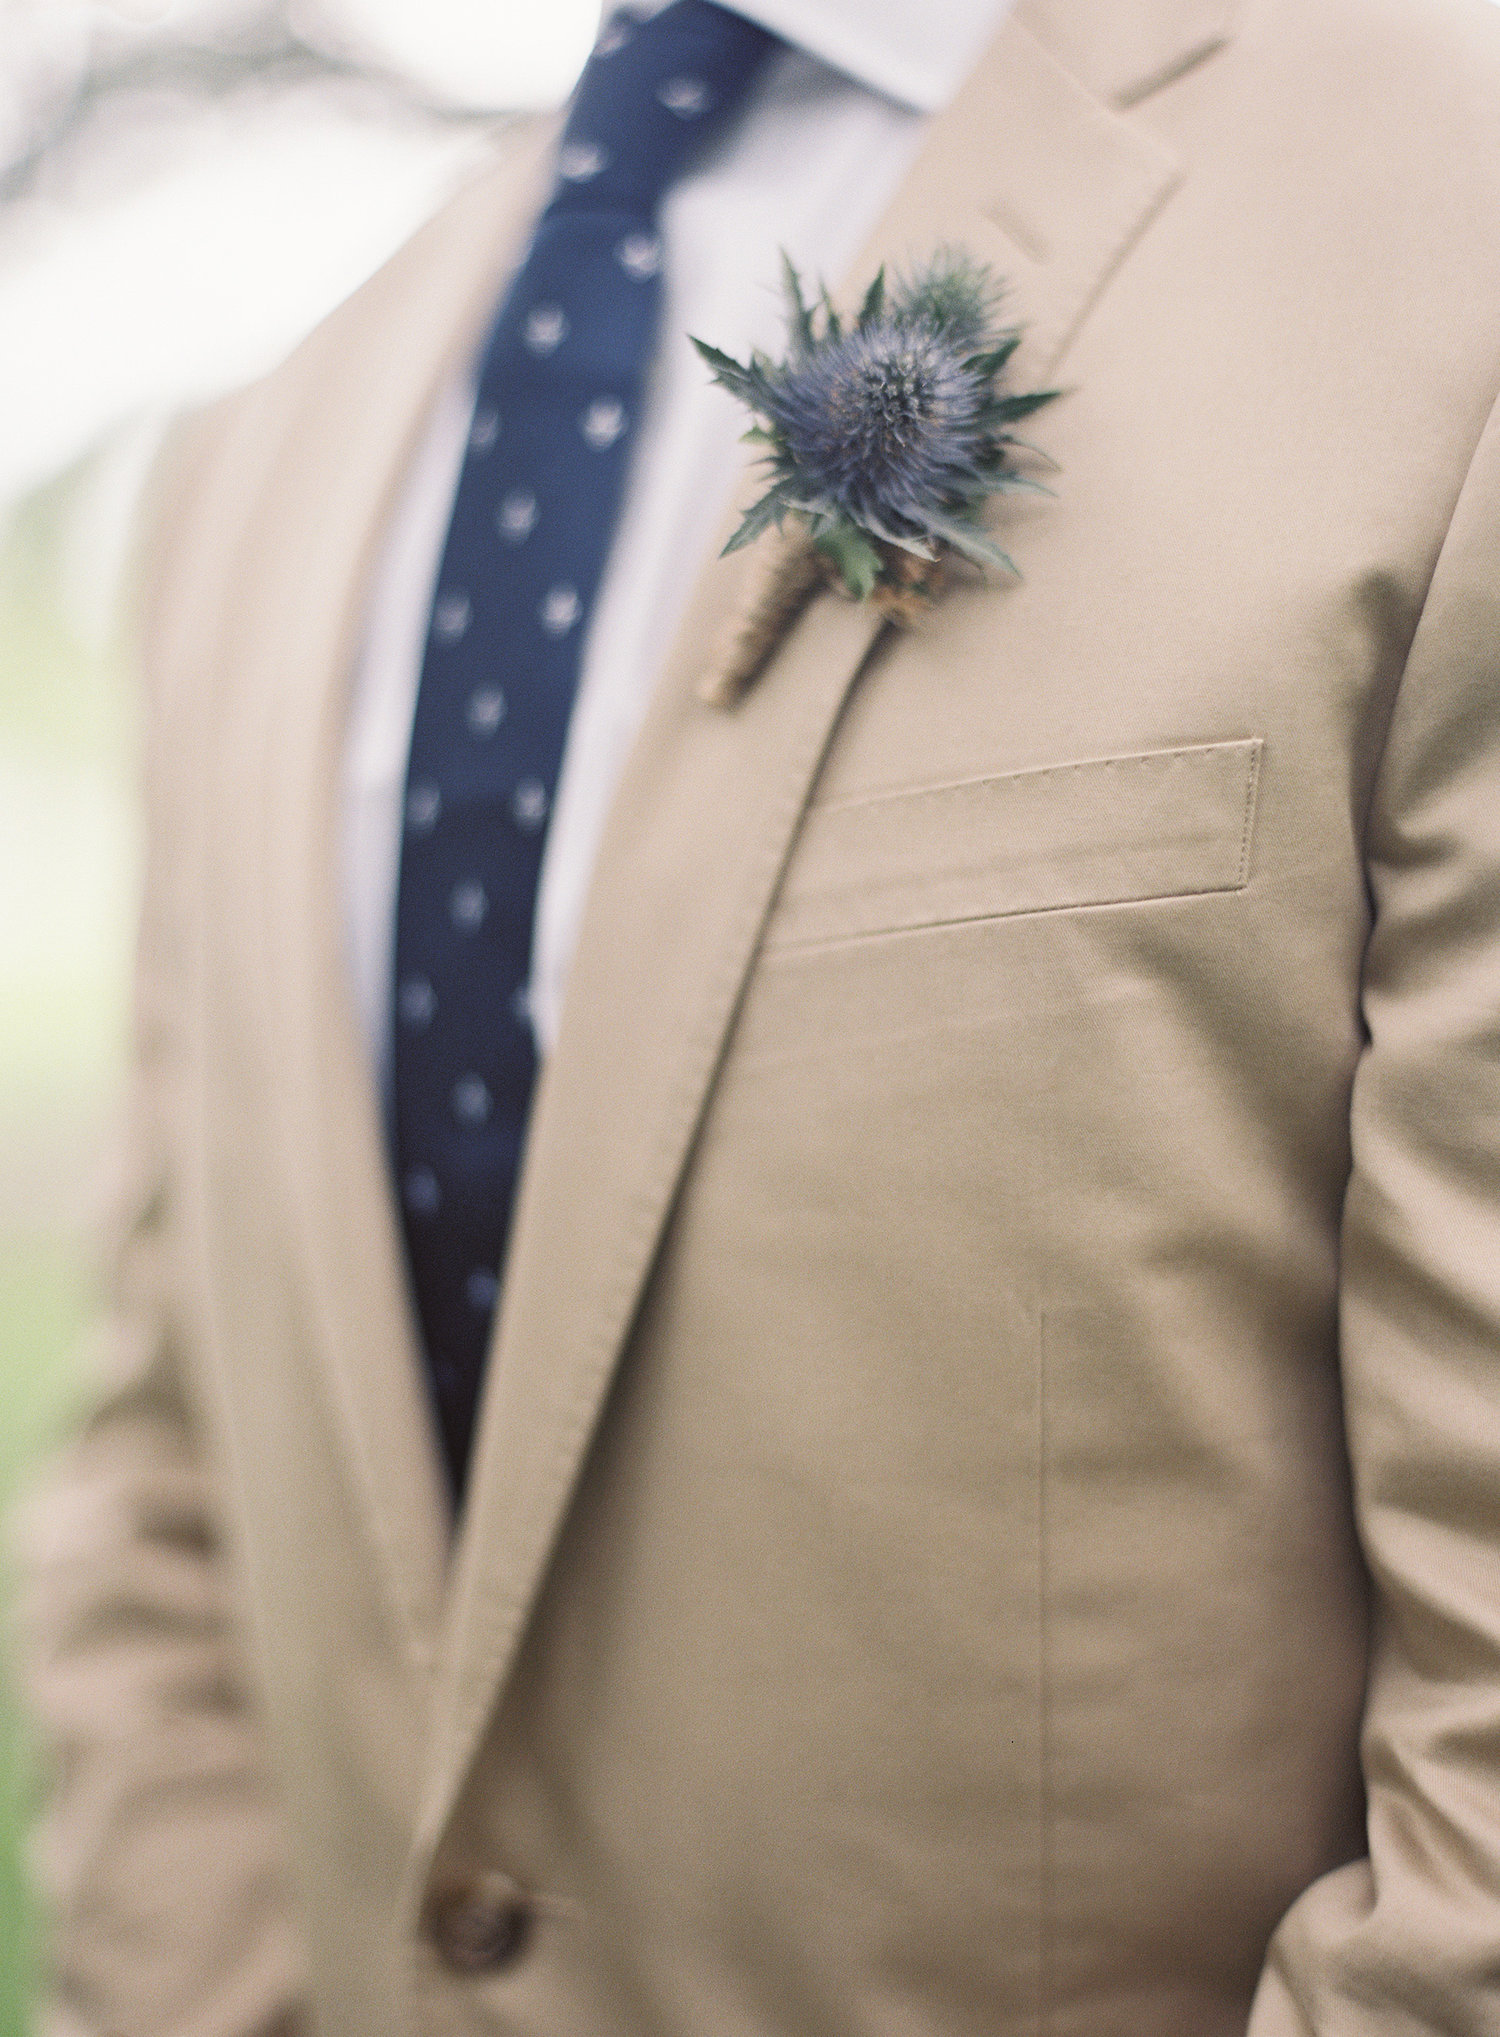 Grooms khaki suite with a blue pattern tie and a blue boutonniere